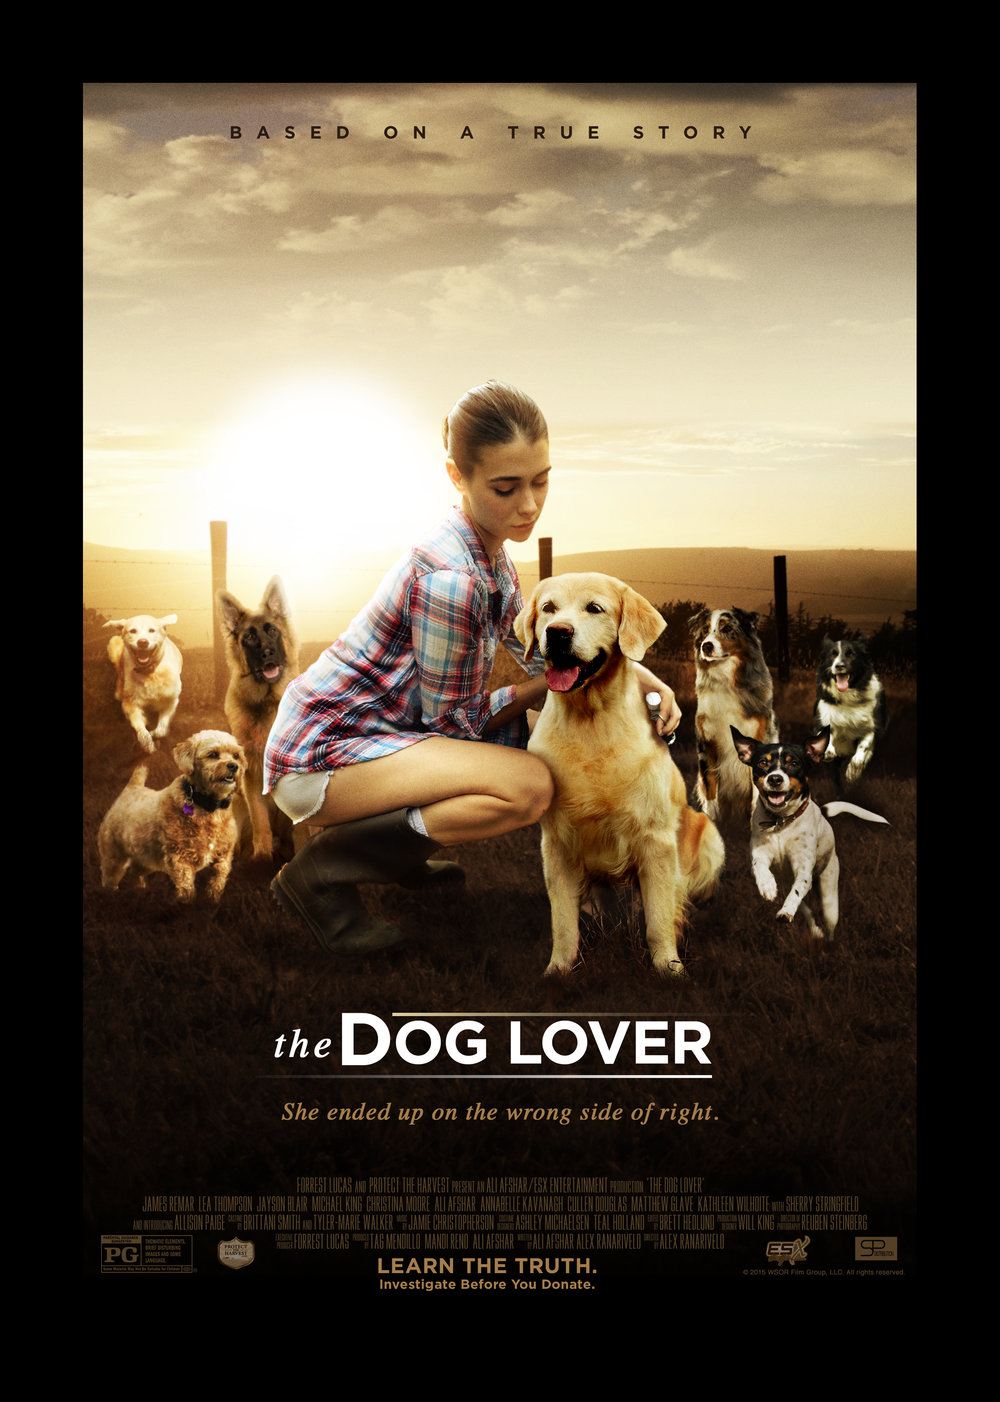 The_DogLover_Movie_Poster JPEG (1).jpg